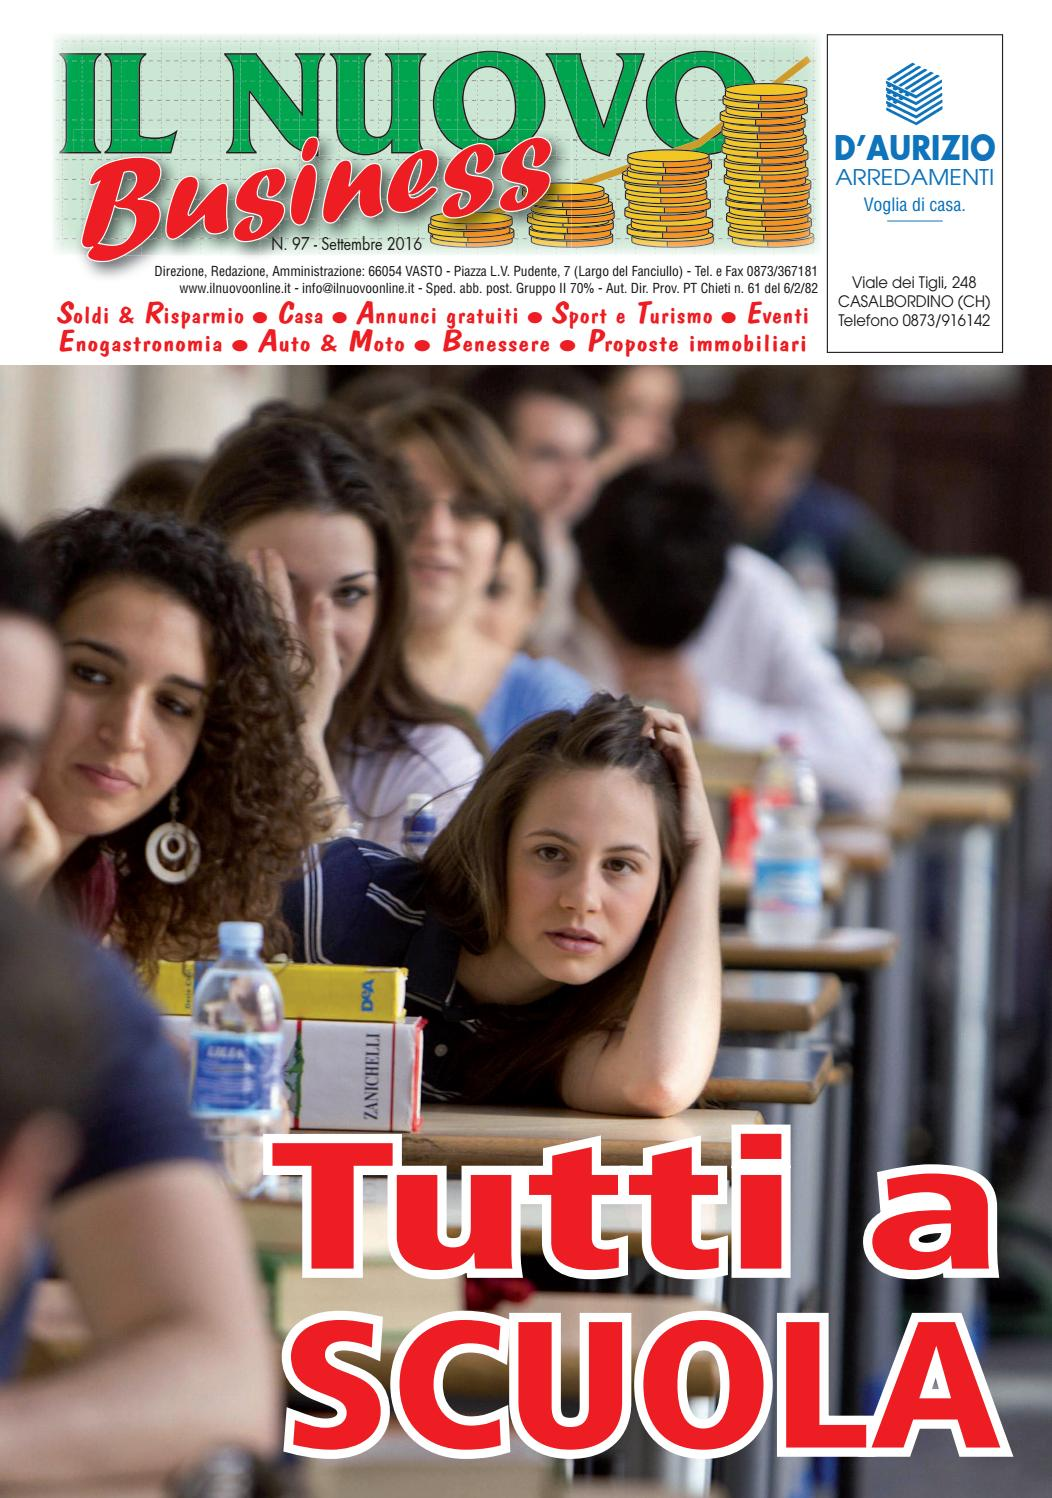 Business settembre 2016 by nicolangelo gualtieri issuu for Gualtieri arredamenti